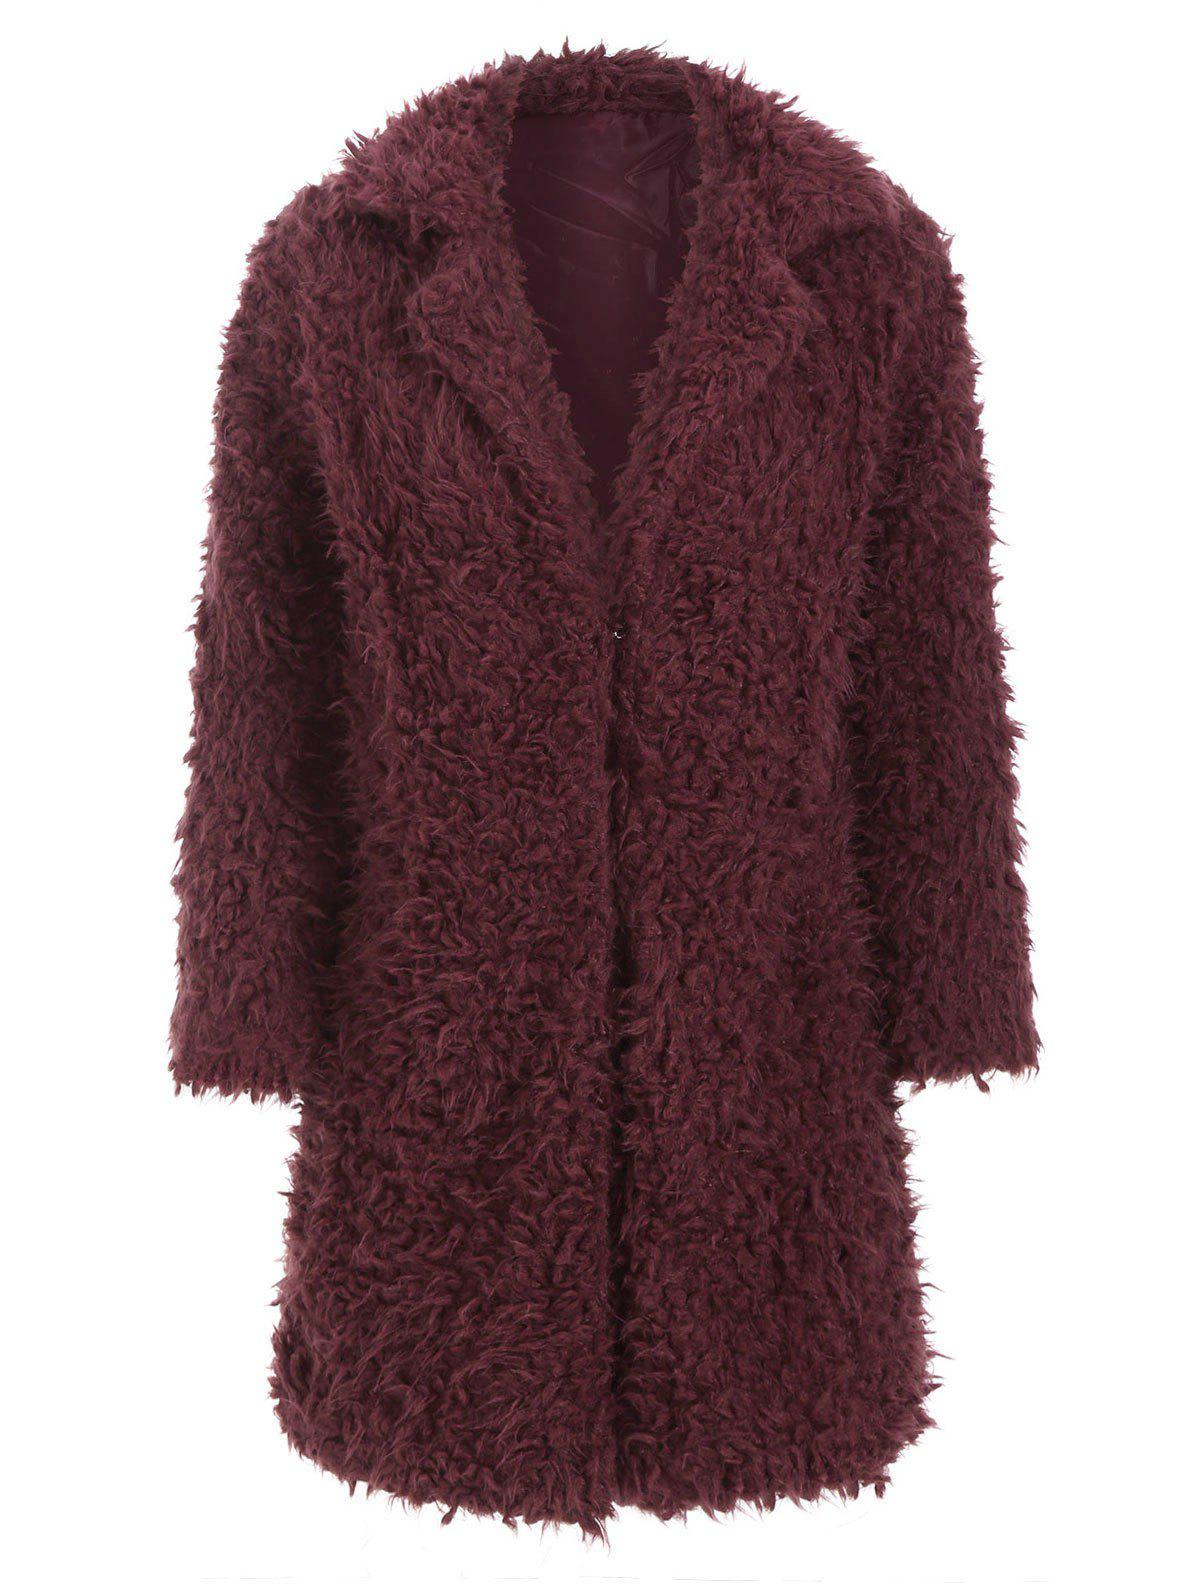 Online Hook-and-eye Fuzzy Faux Shearling Coat